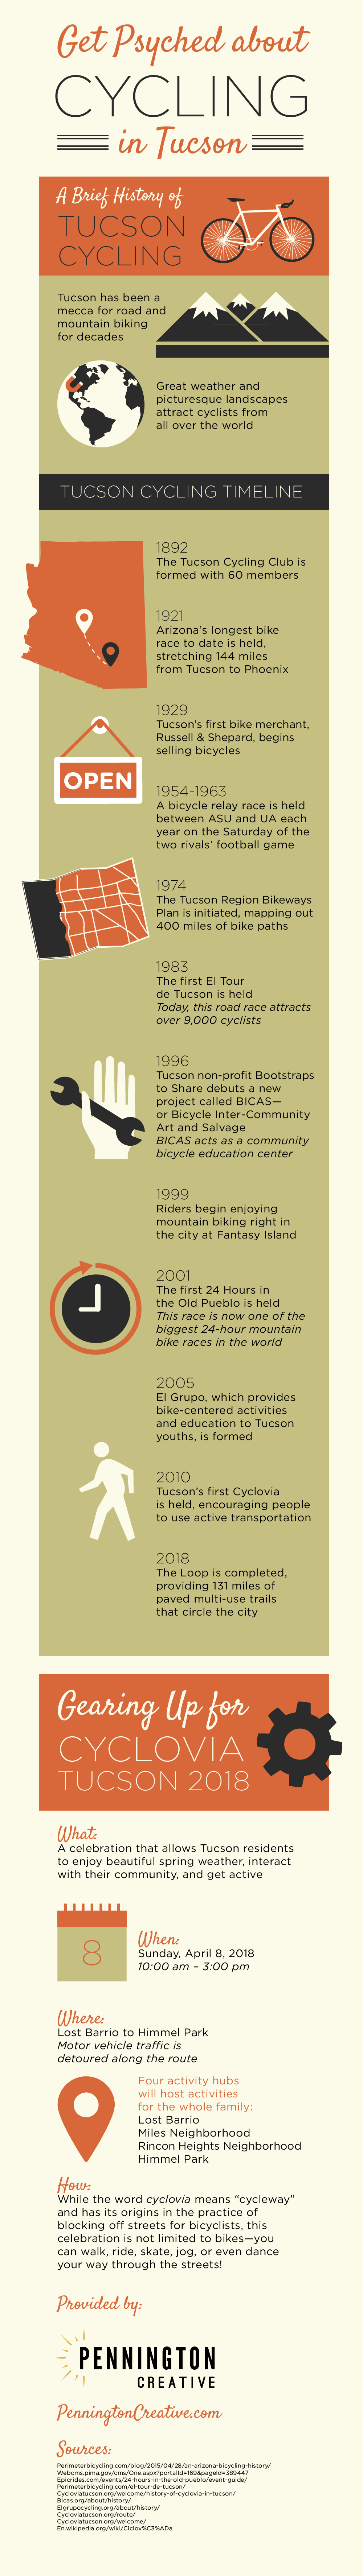 Infographic about cycling in Tucson and Cyclovia 2018.